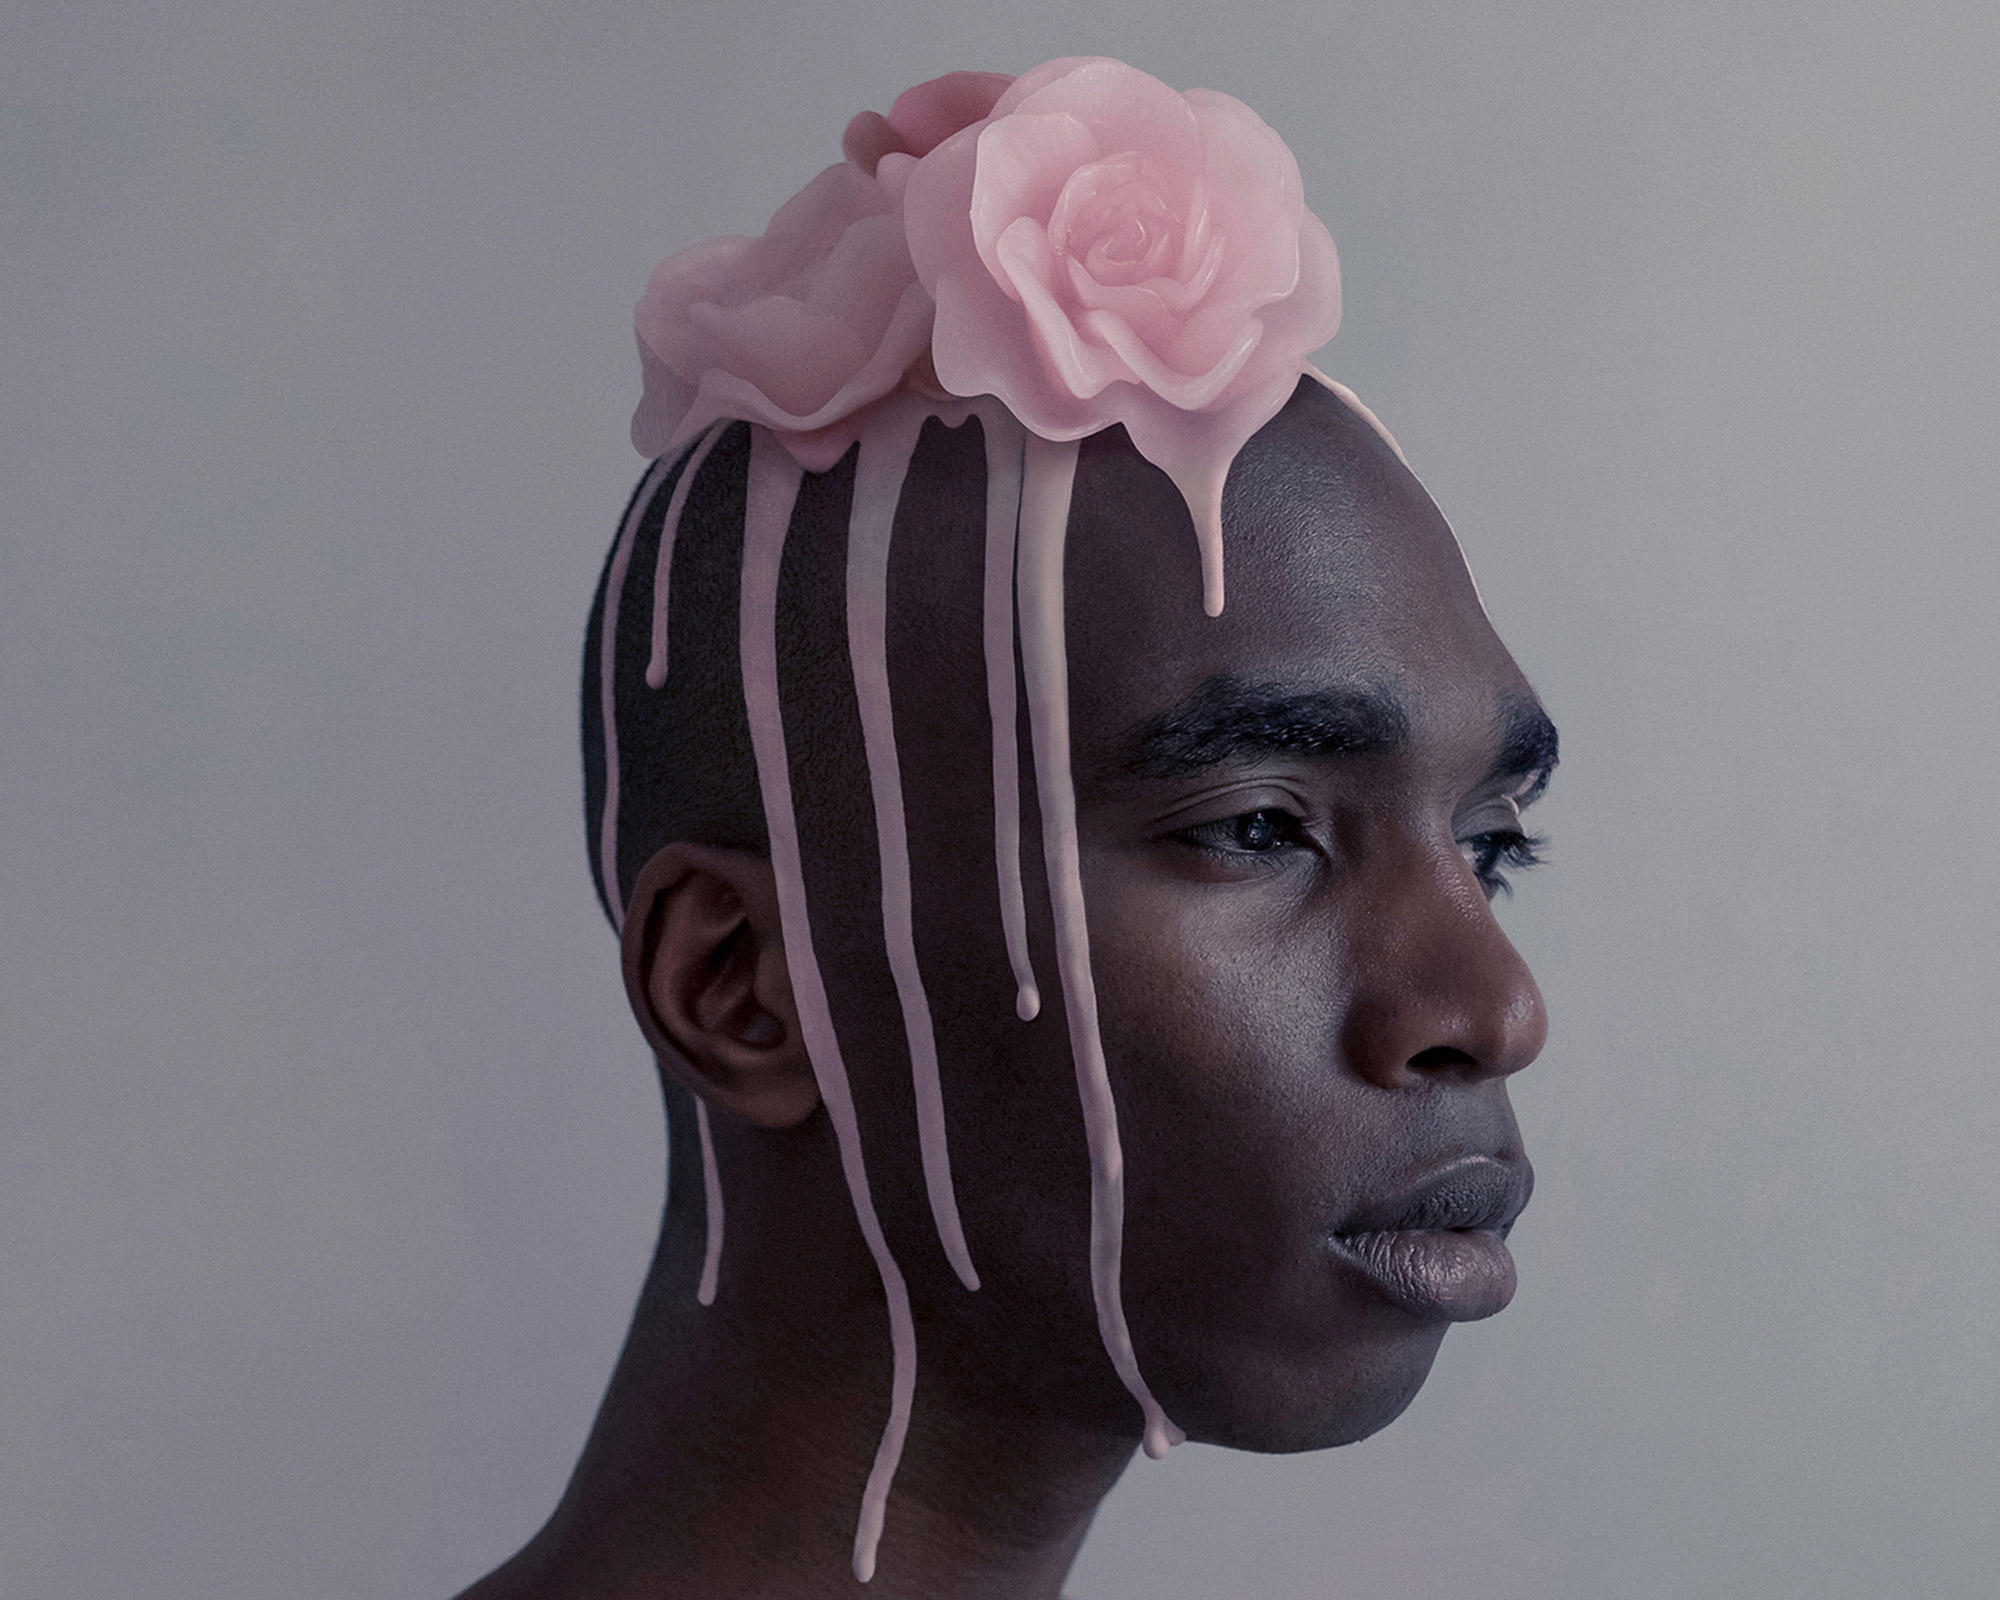 Pastel Dreams in Brooke DiDonato's Surreal Photography